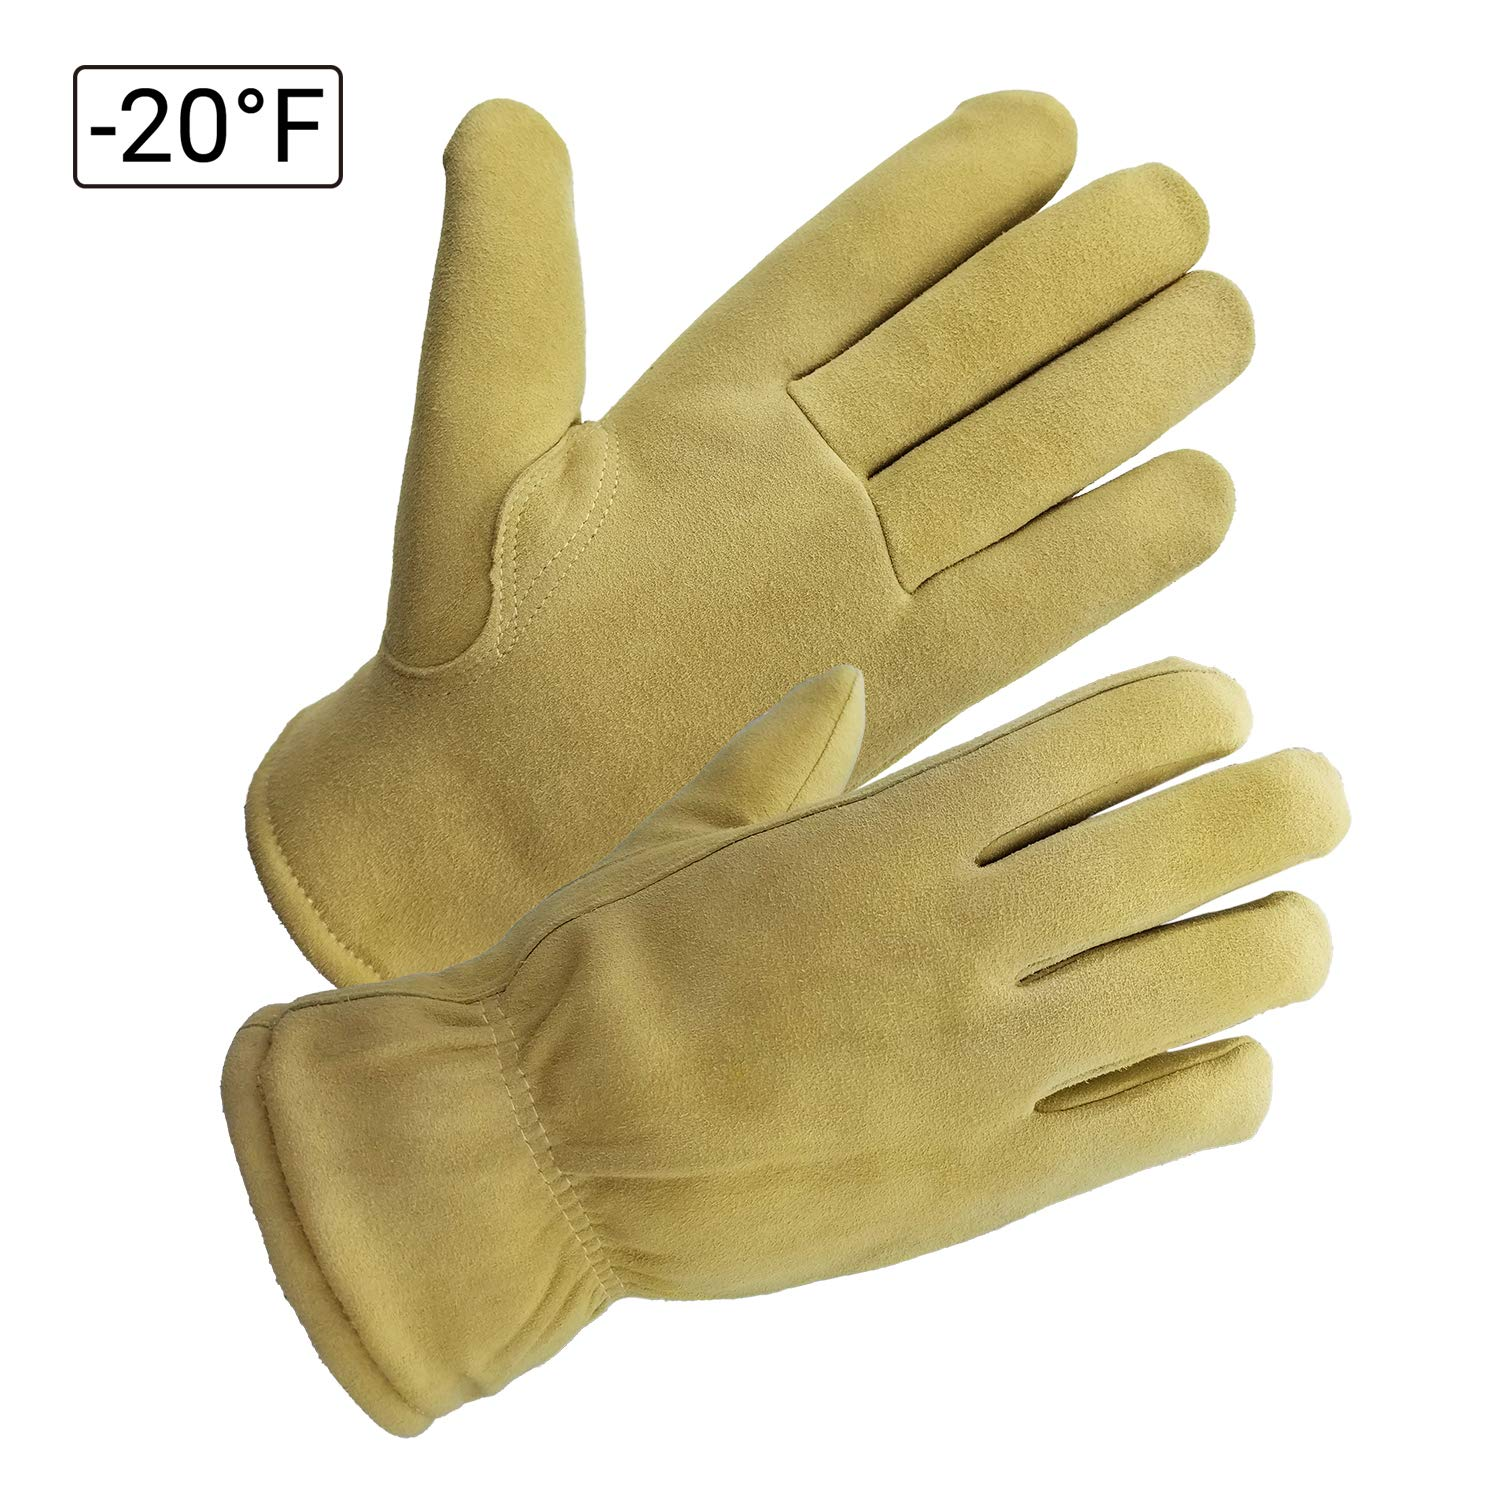 SKYDEER -20°F Cold-proof Winter Gloves with Windproof & Soft & Warm Full Deerskin Suede Leather (Unisex SD8671T) SKYDEER CO.